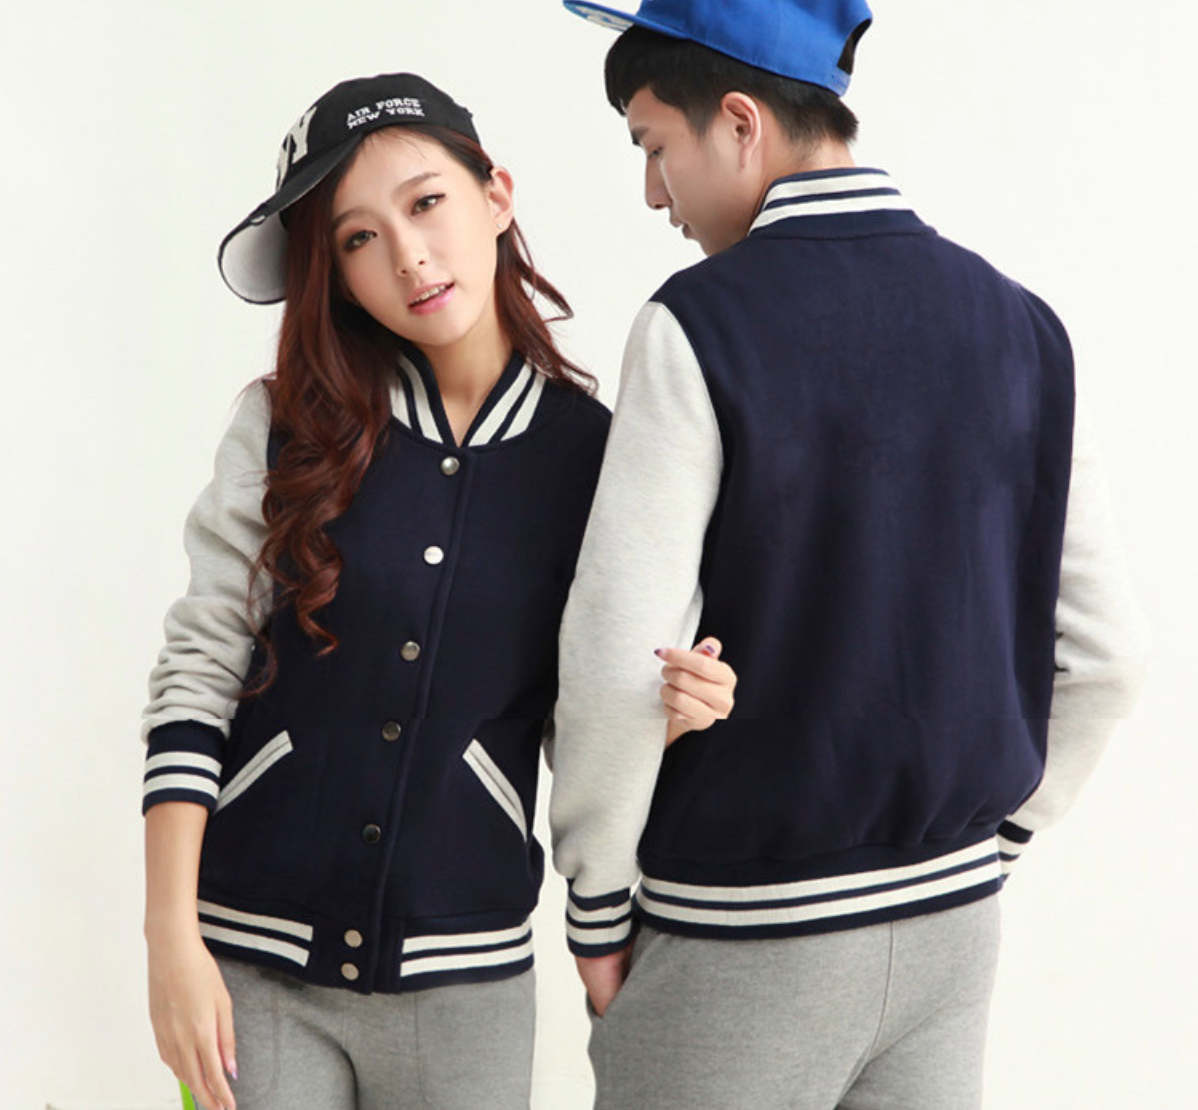 UNISEX - Fleece Varsity Baseball Jackets